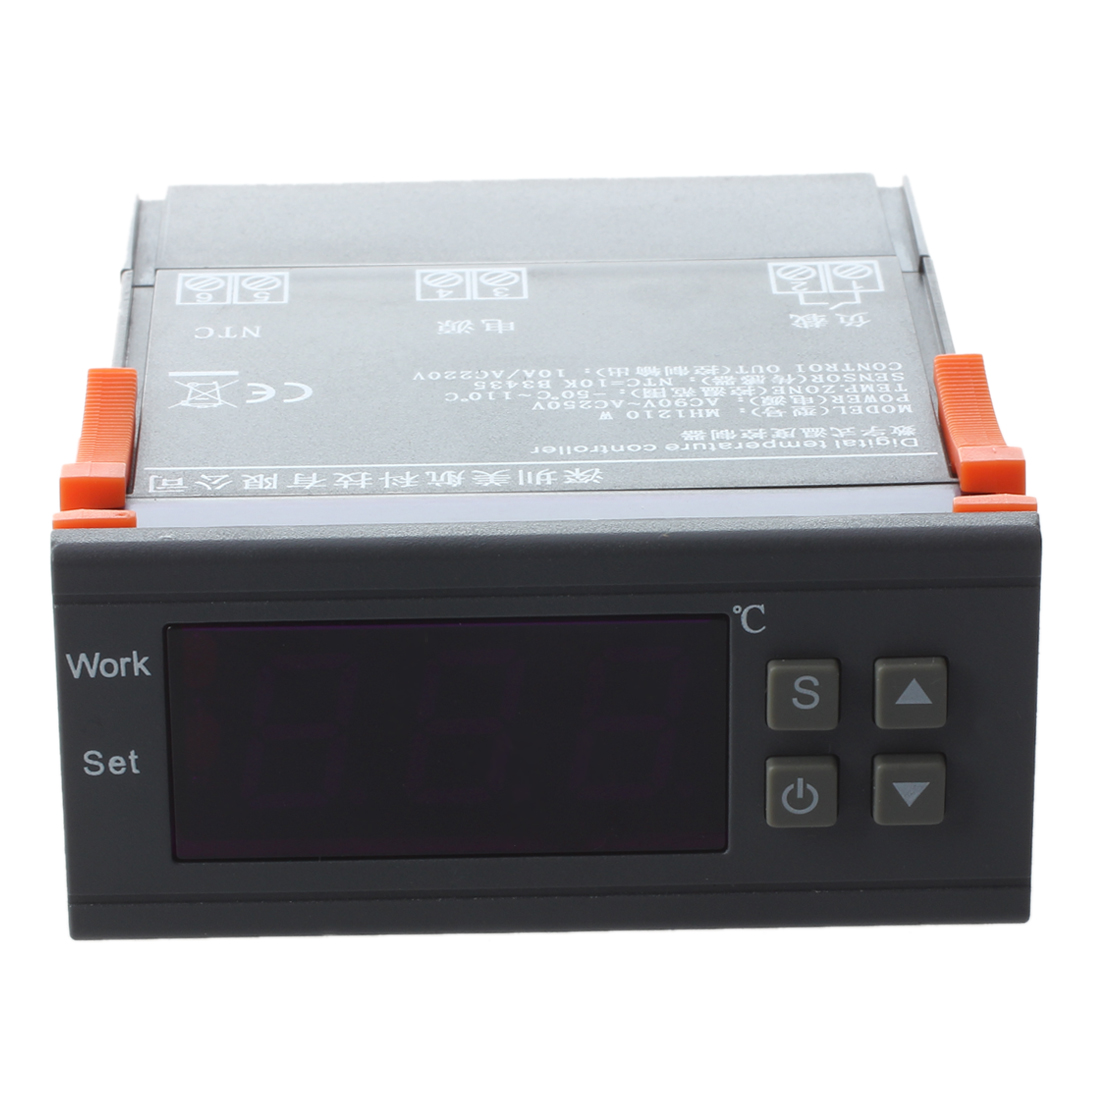 AC 90V-250V MH1210W Digital Temperature Controller Screen 0.1 Celsius Control Accuracy 10A Rated Current For Refrigerator Part